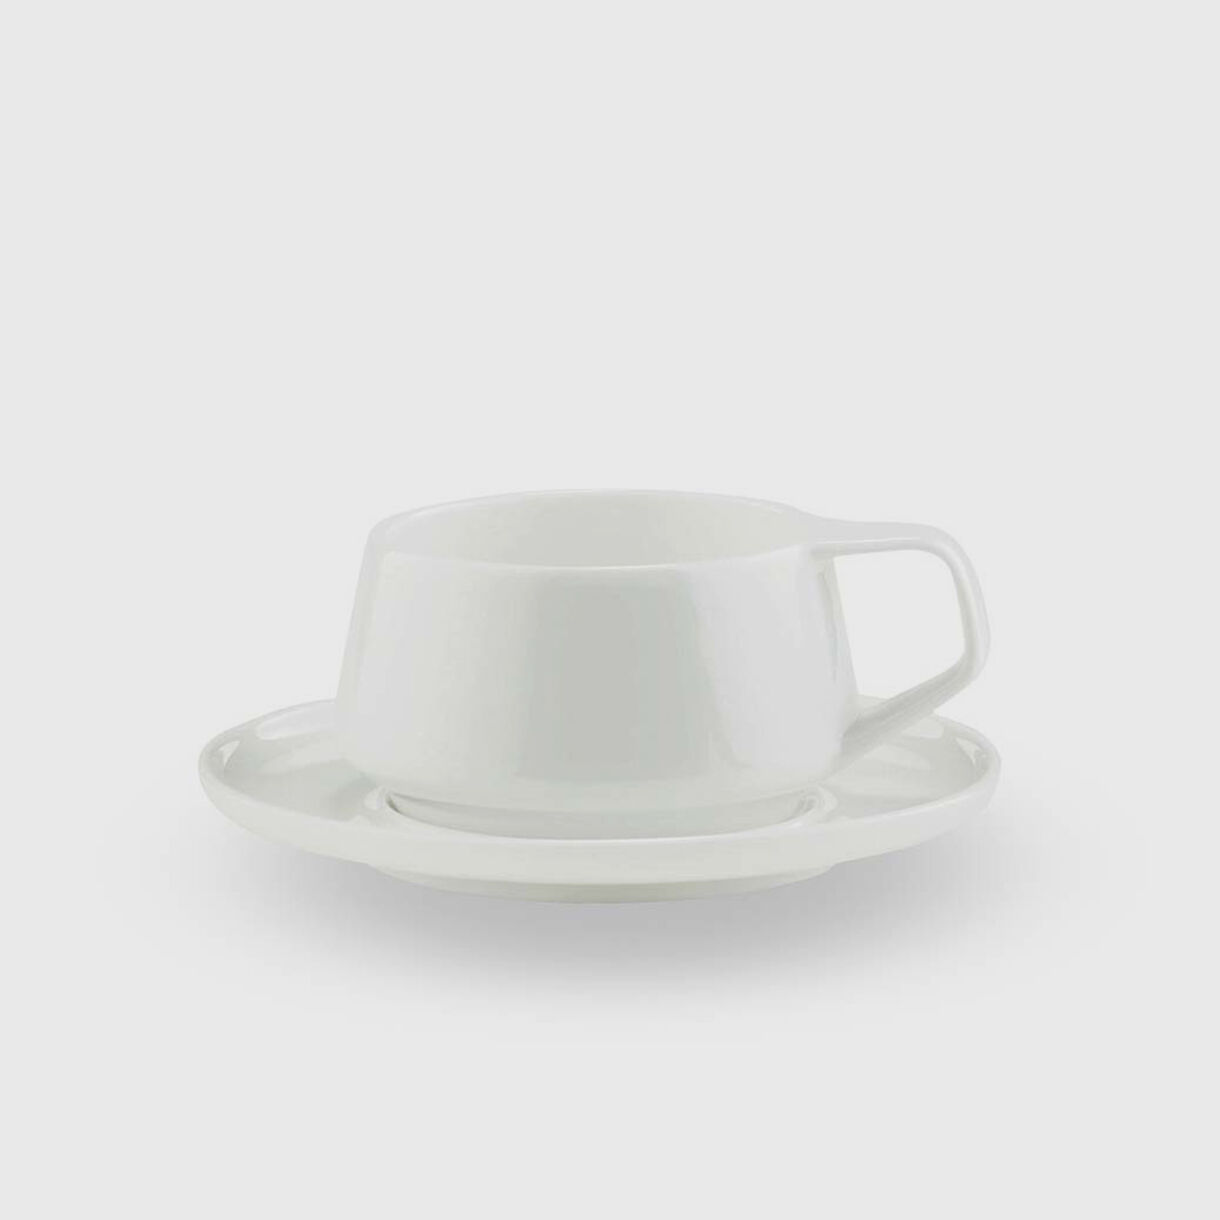 Mark Newson by Noritake Cup & Saucer Set